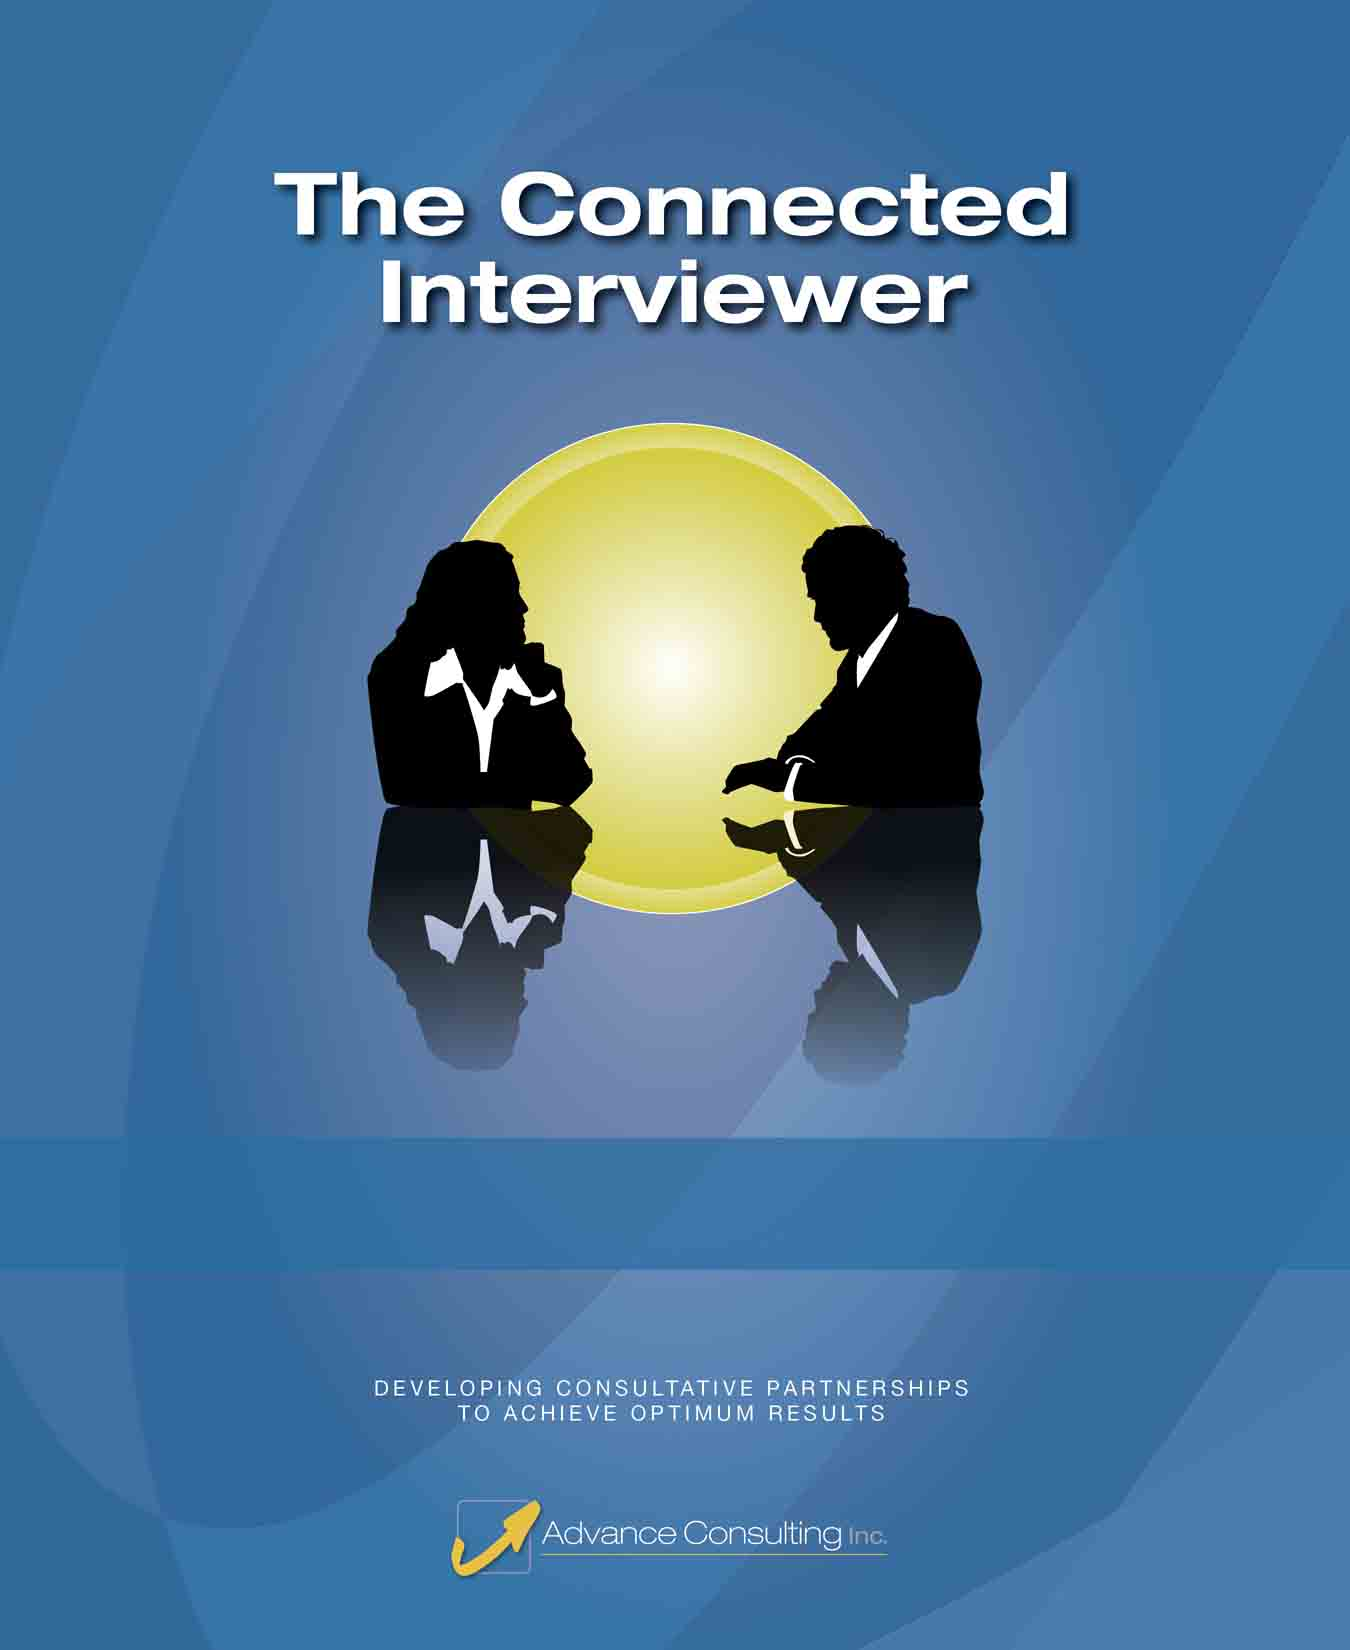 The Connected Interviewer